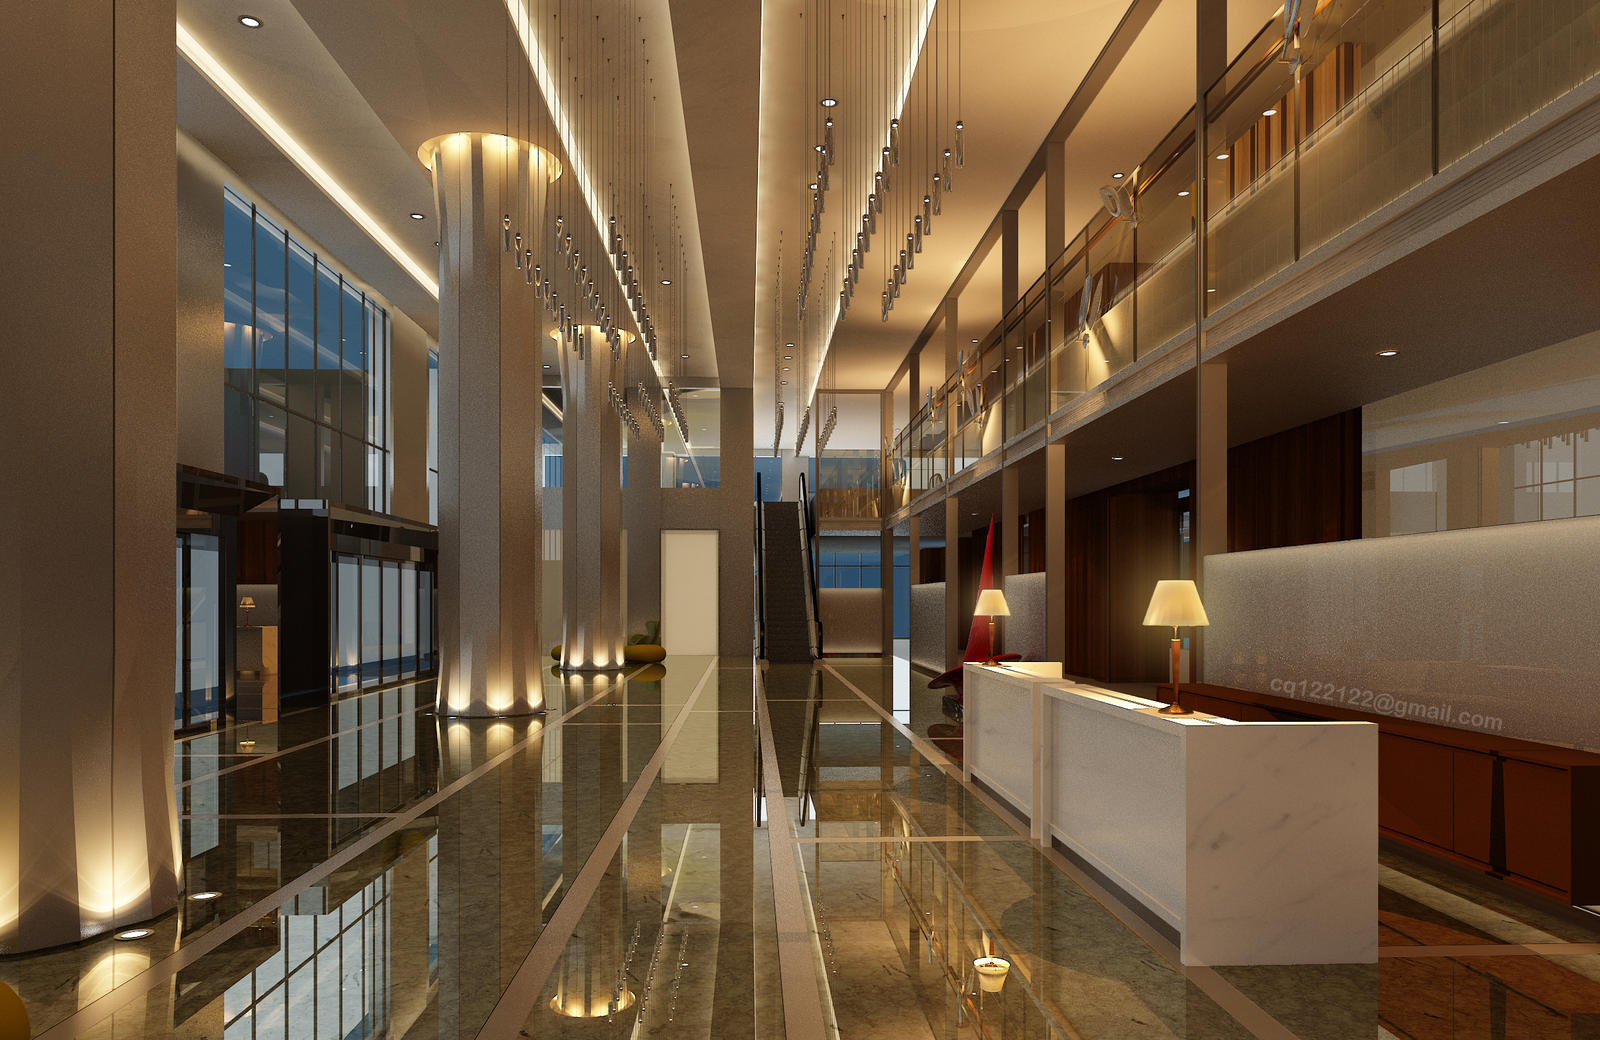 Hotel lobby design night by douglasdao on deviantart for Business hotel design